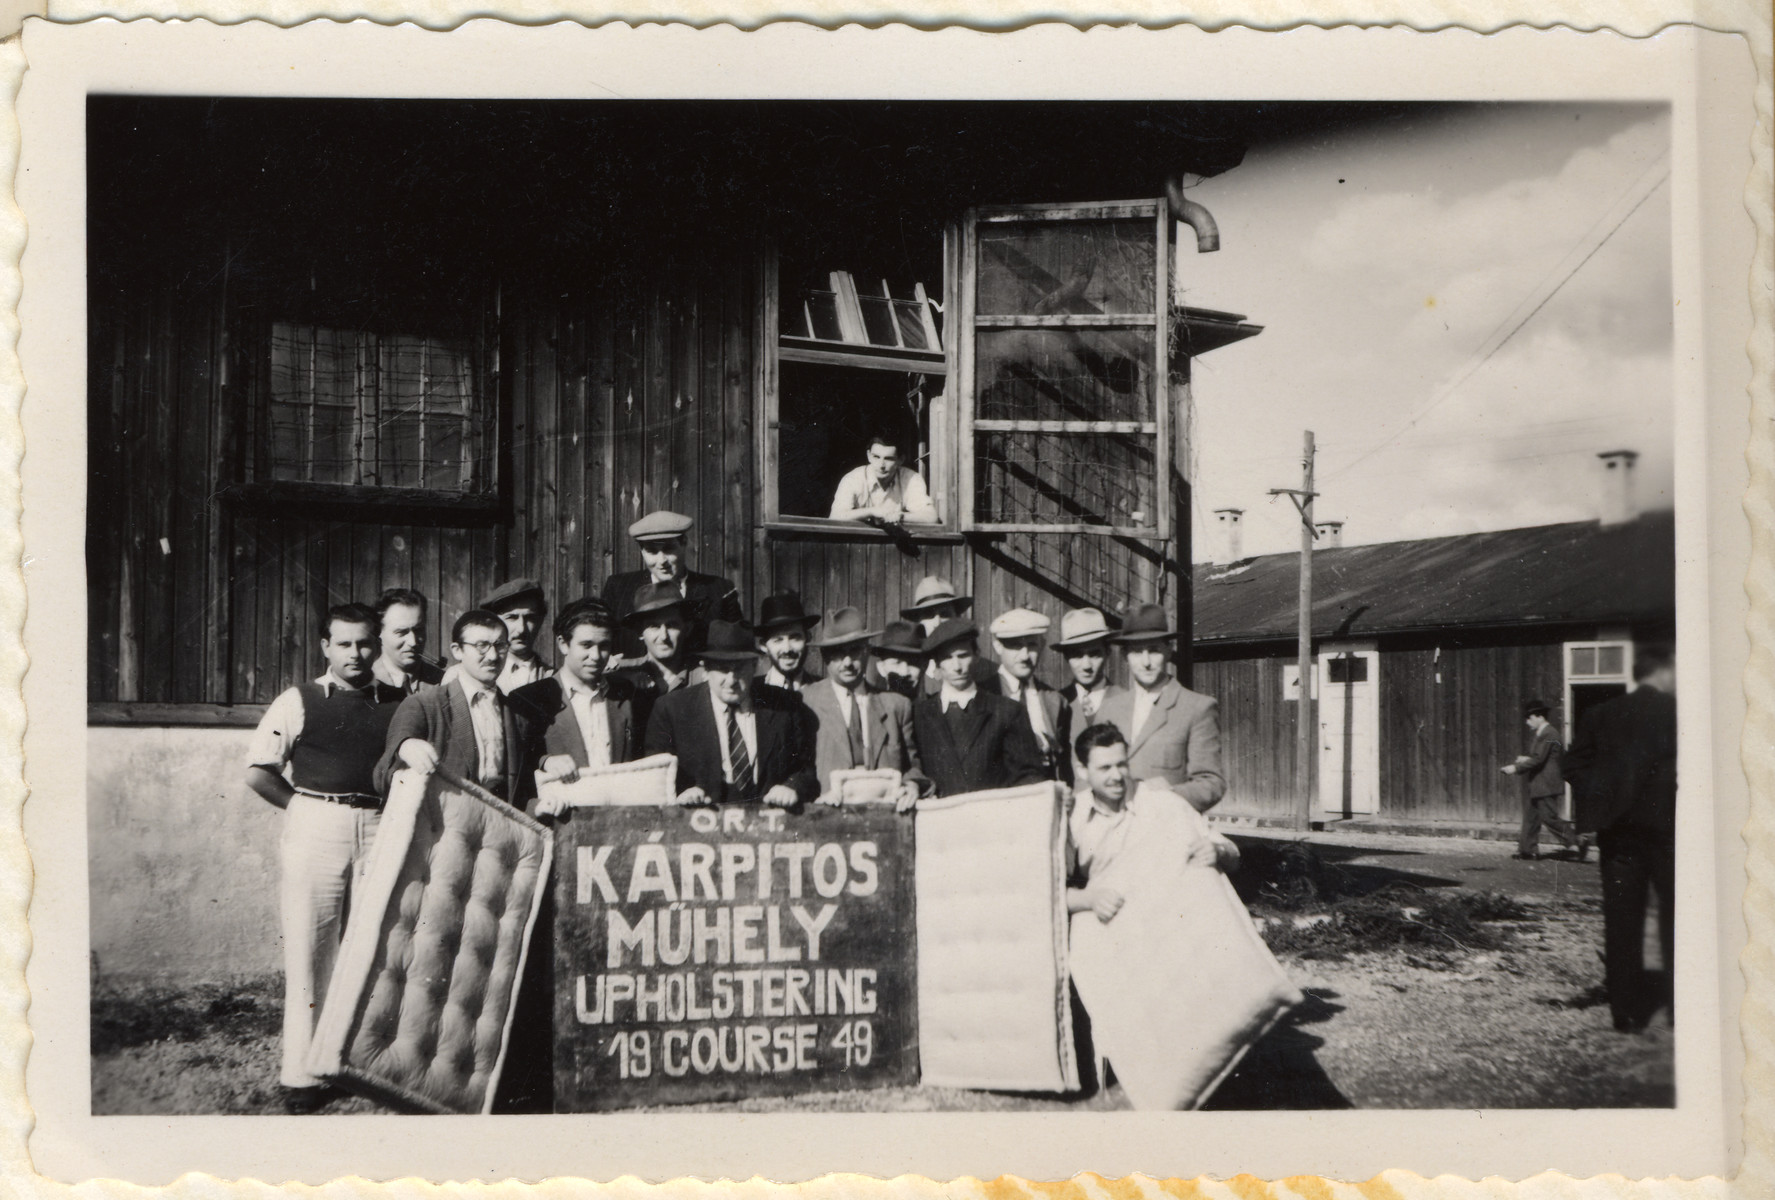 A group of Jewish men pose with the mattresses they made in the ORT upholstering course in the Hallein displaced persons' camp.